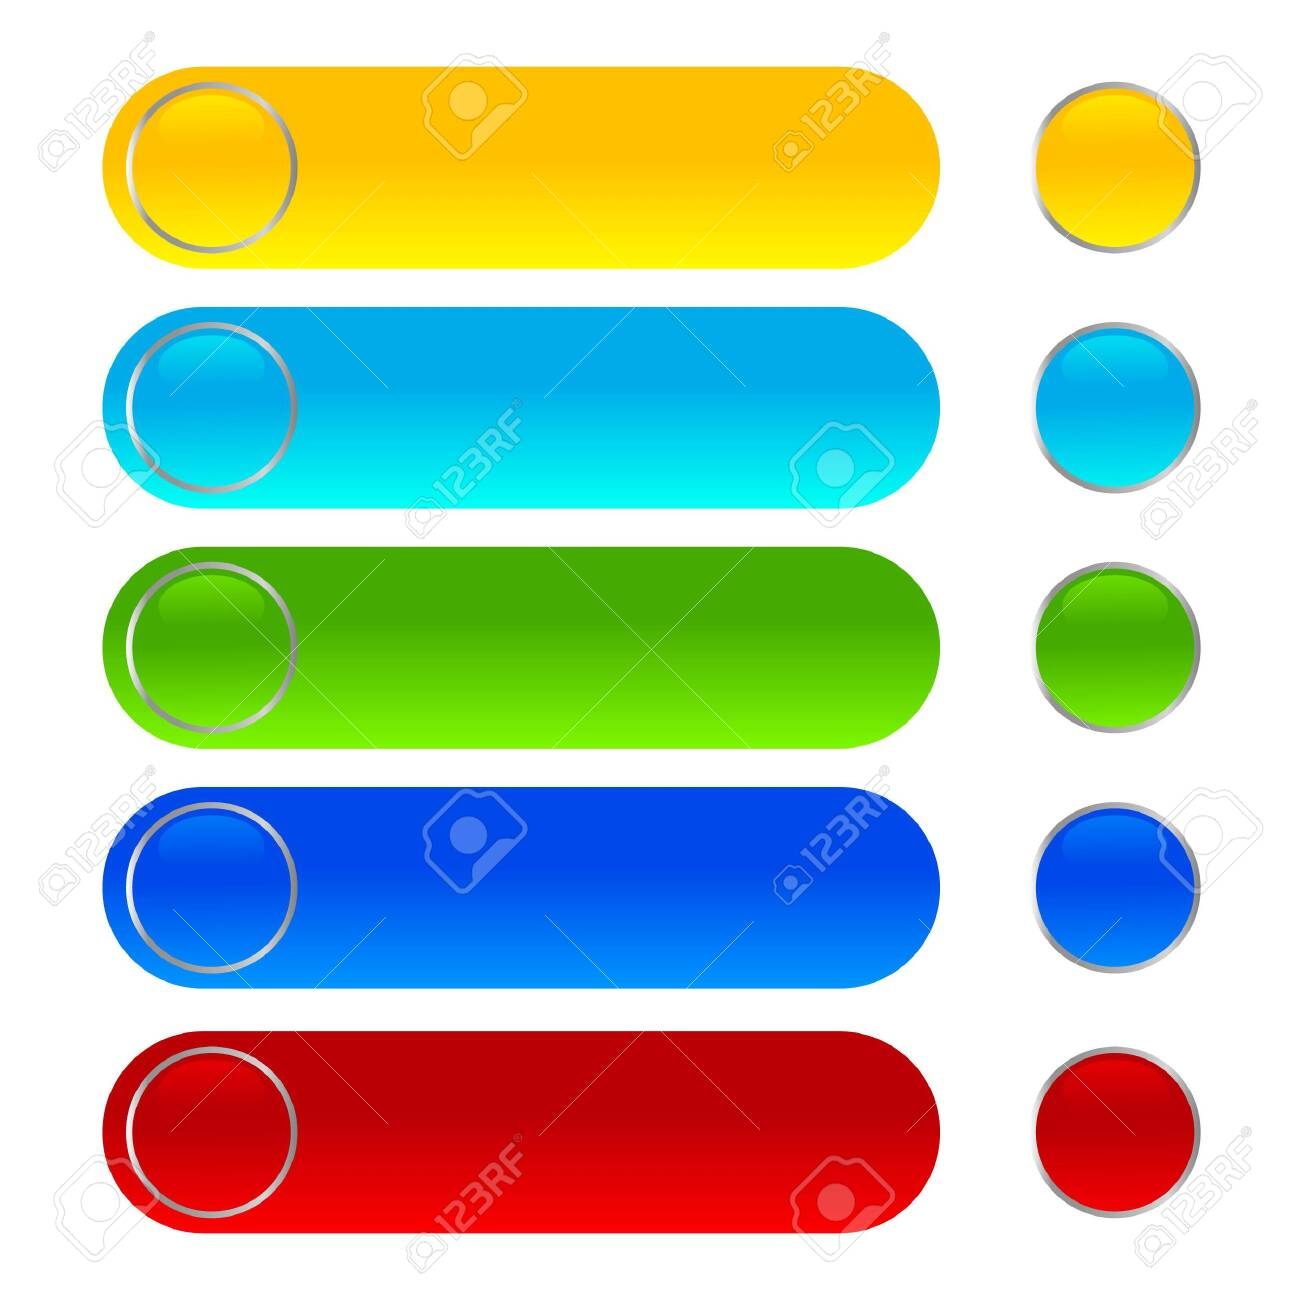 Shiny web buttons different color icons - 124355826